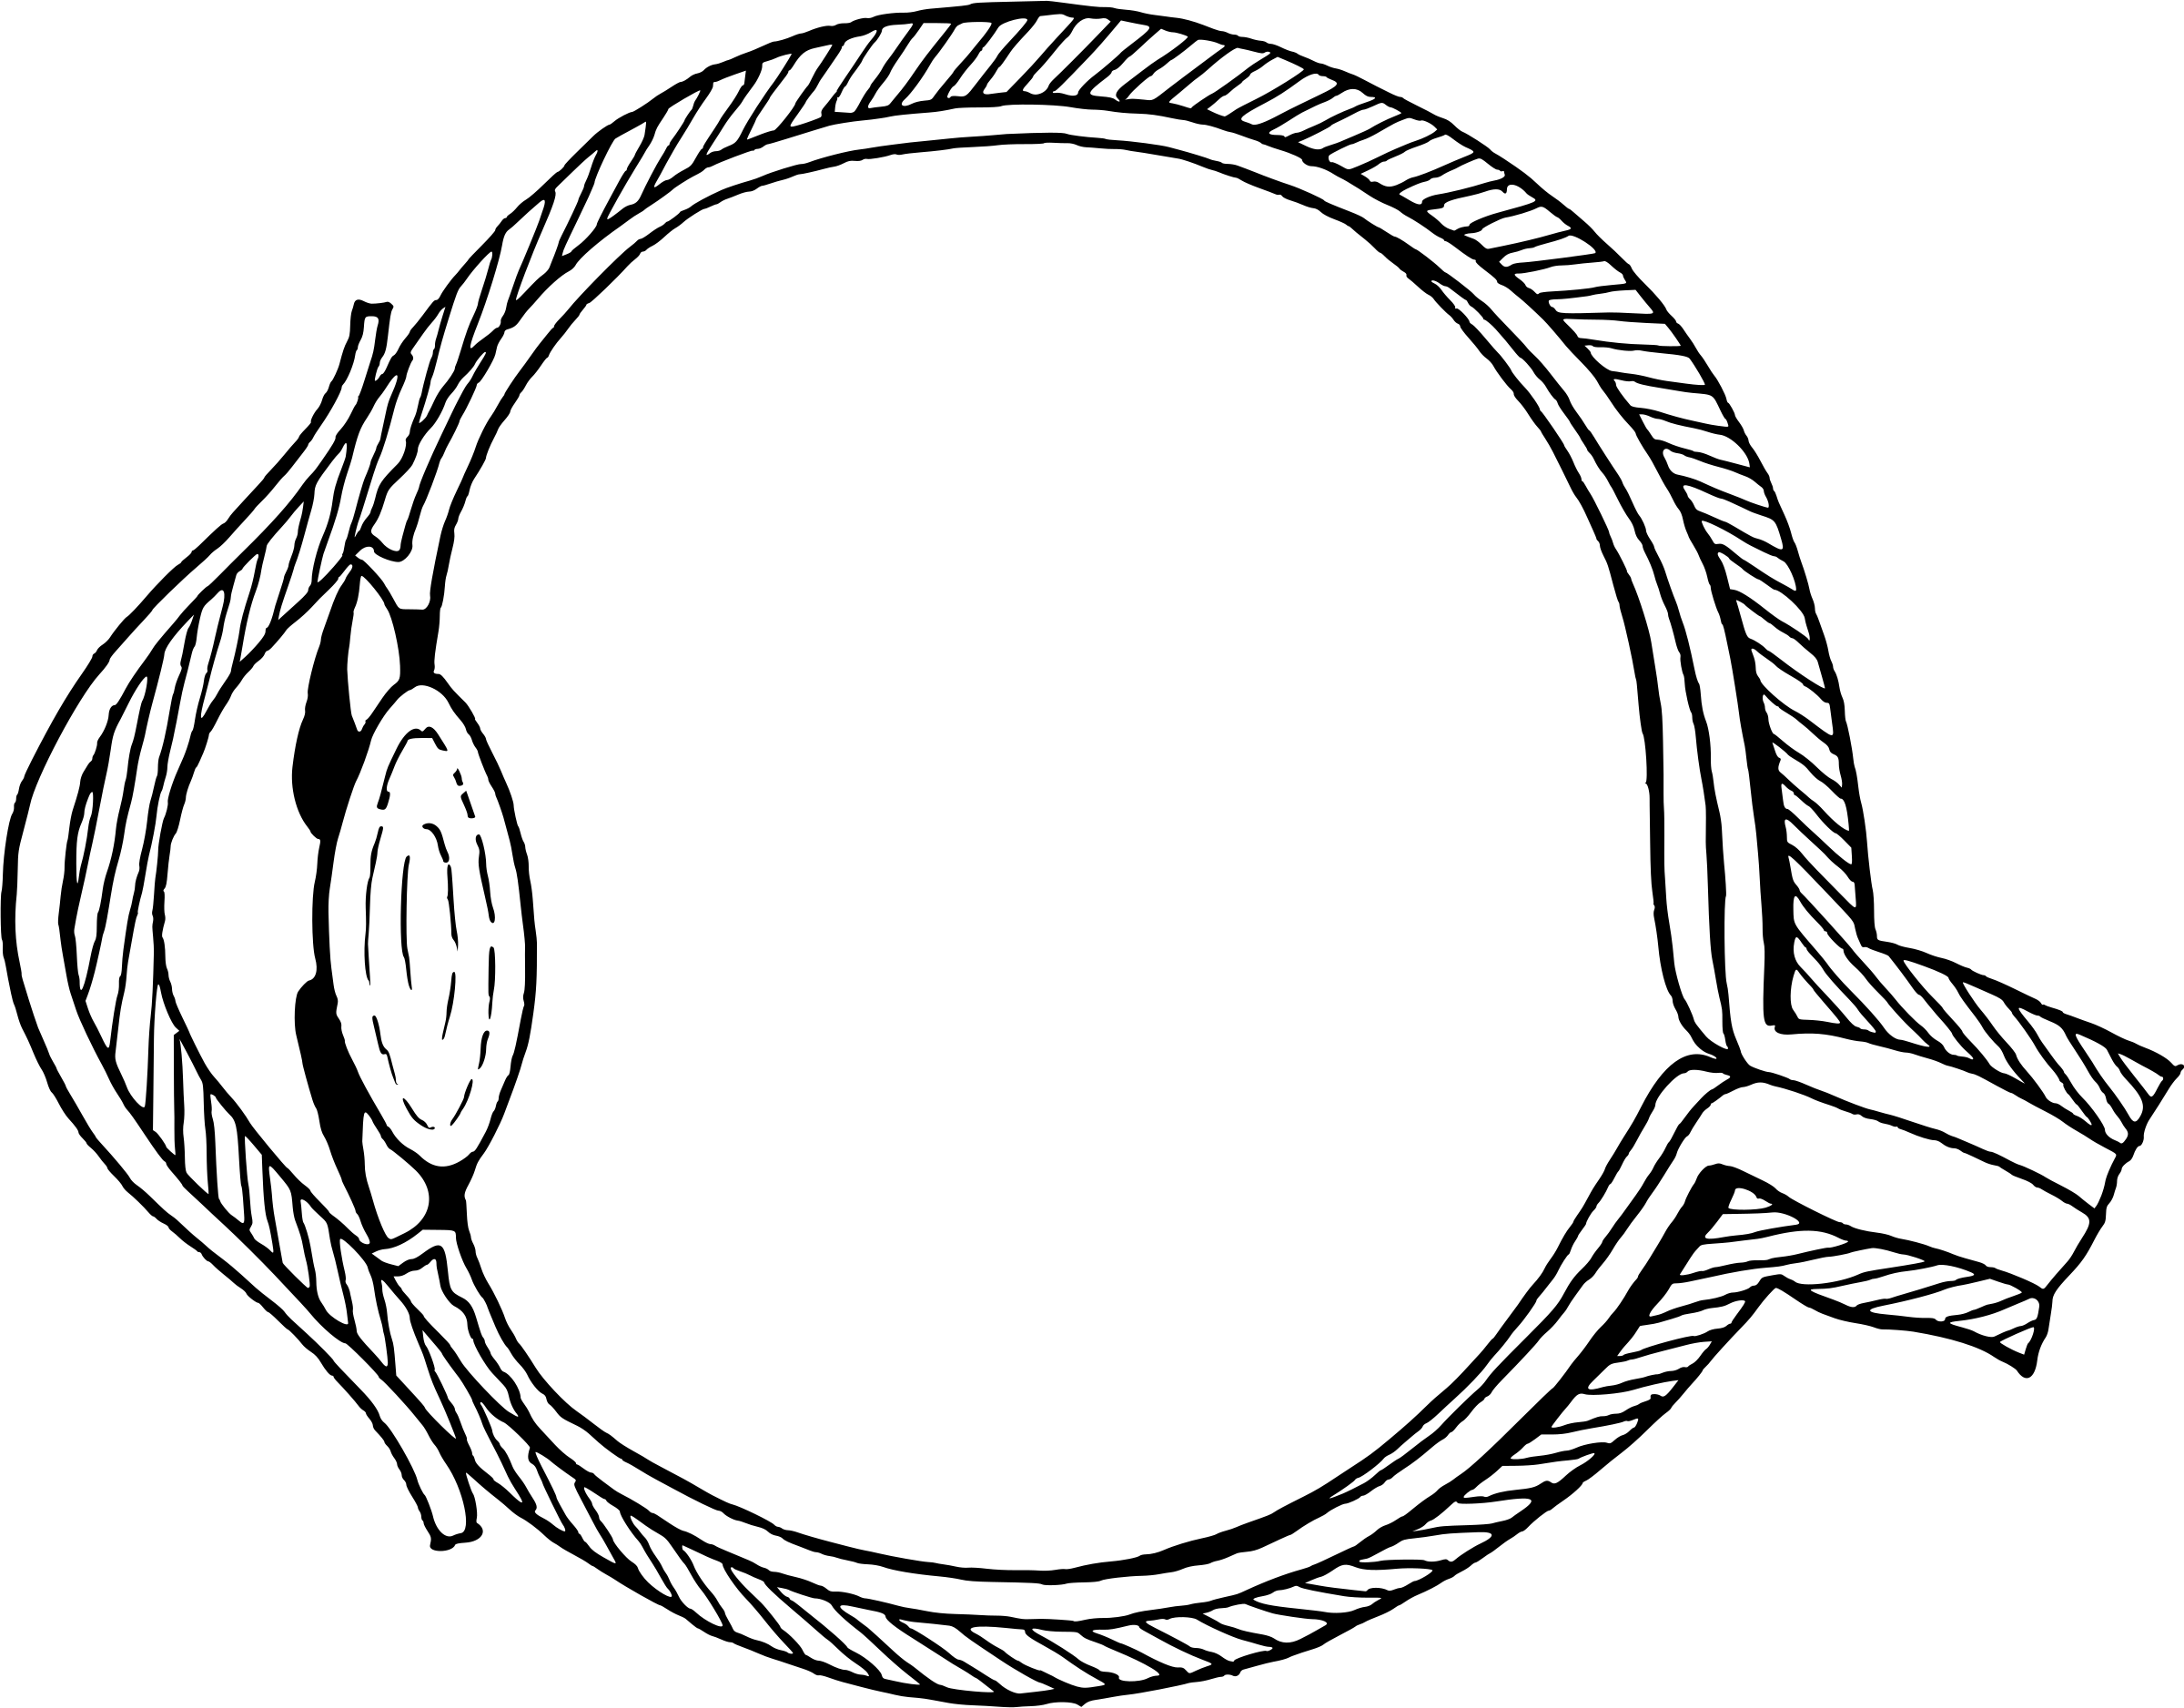 Clipart Eye Diagram Without Annotation